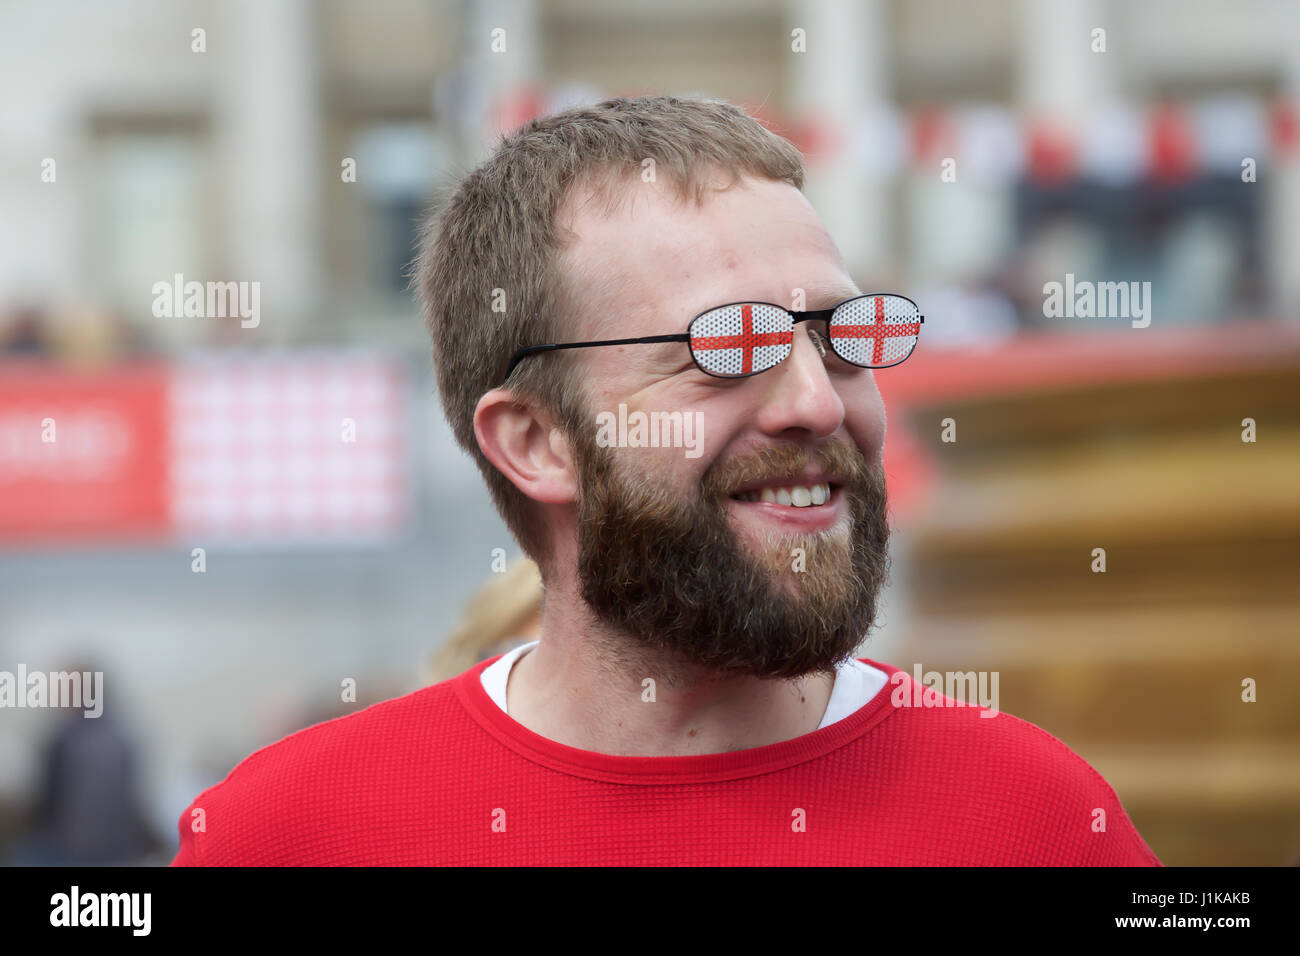 Trafalgar Square,UK,22nd April 2017,A man wears sunglasses with the St Georges cross on them at The Annual Feast - Stock Image